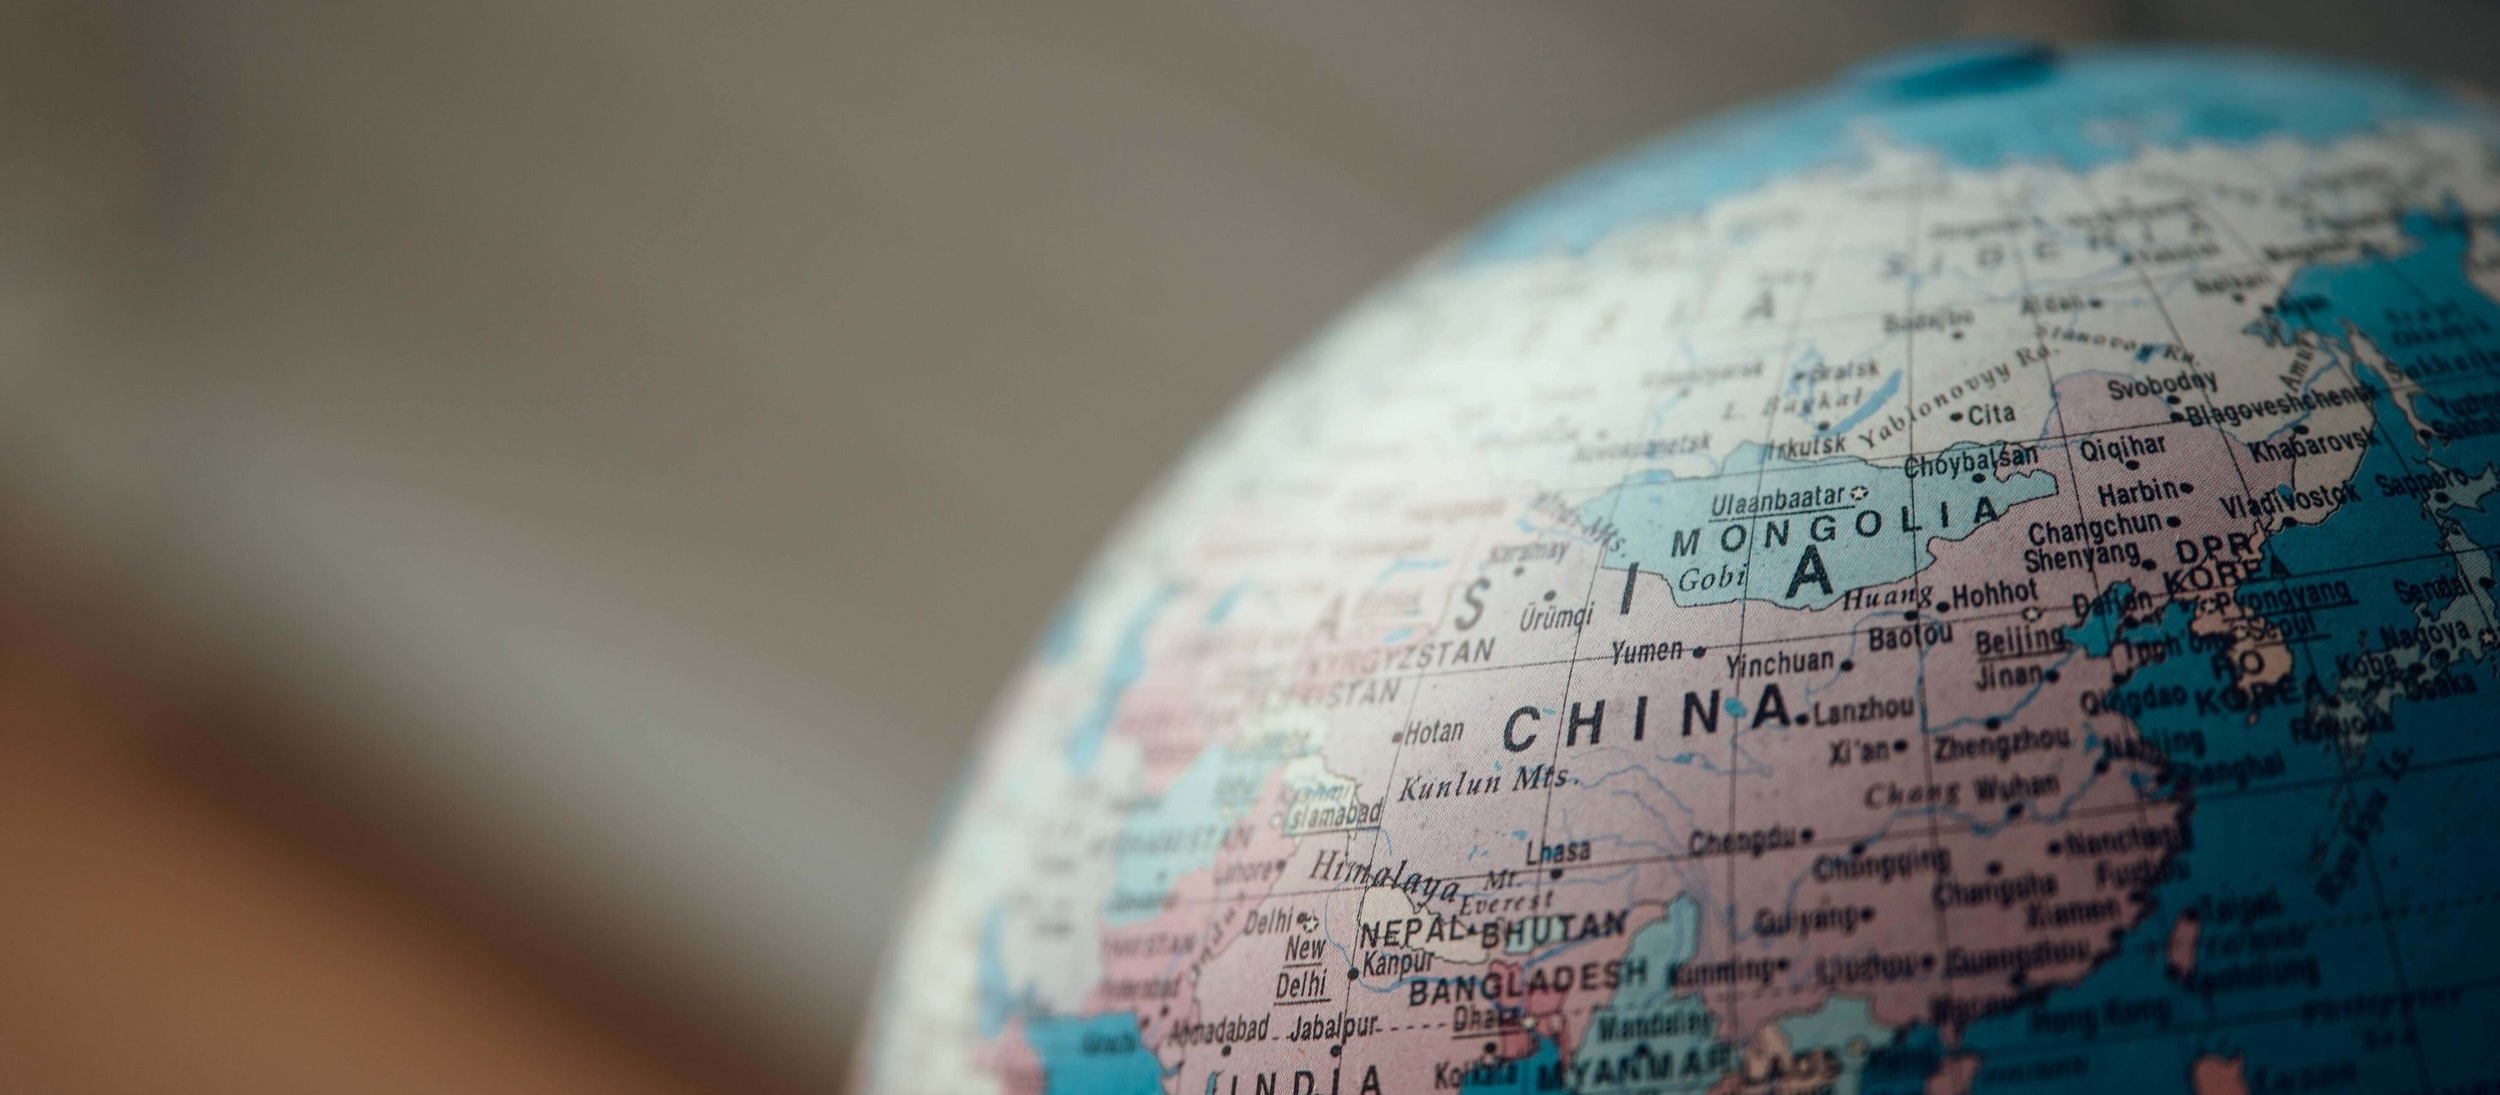 efficiency-import-export-consultant-blog-importing-into-china-part-2.jpg